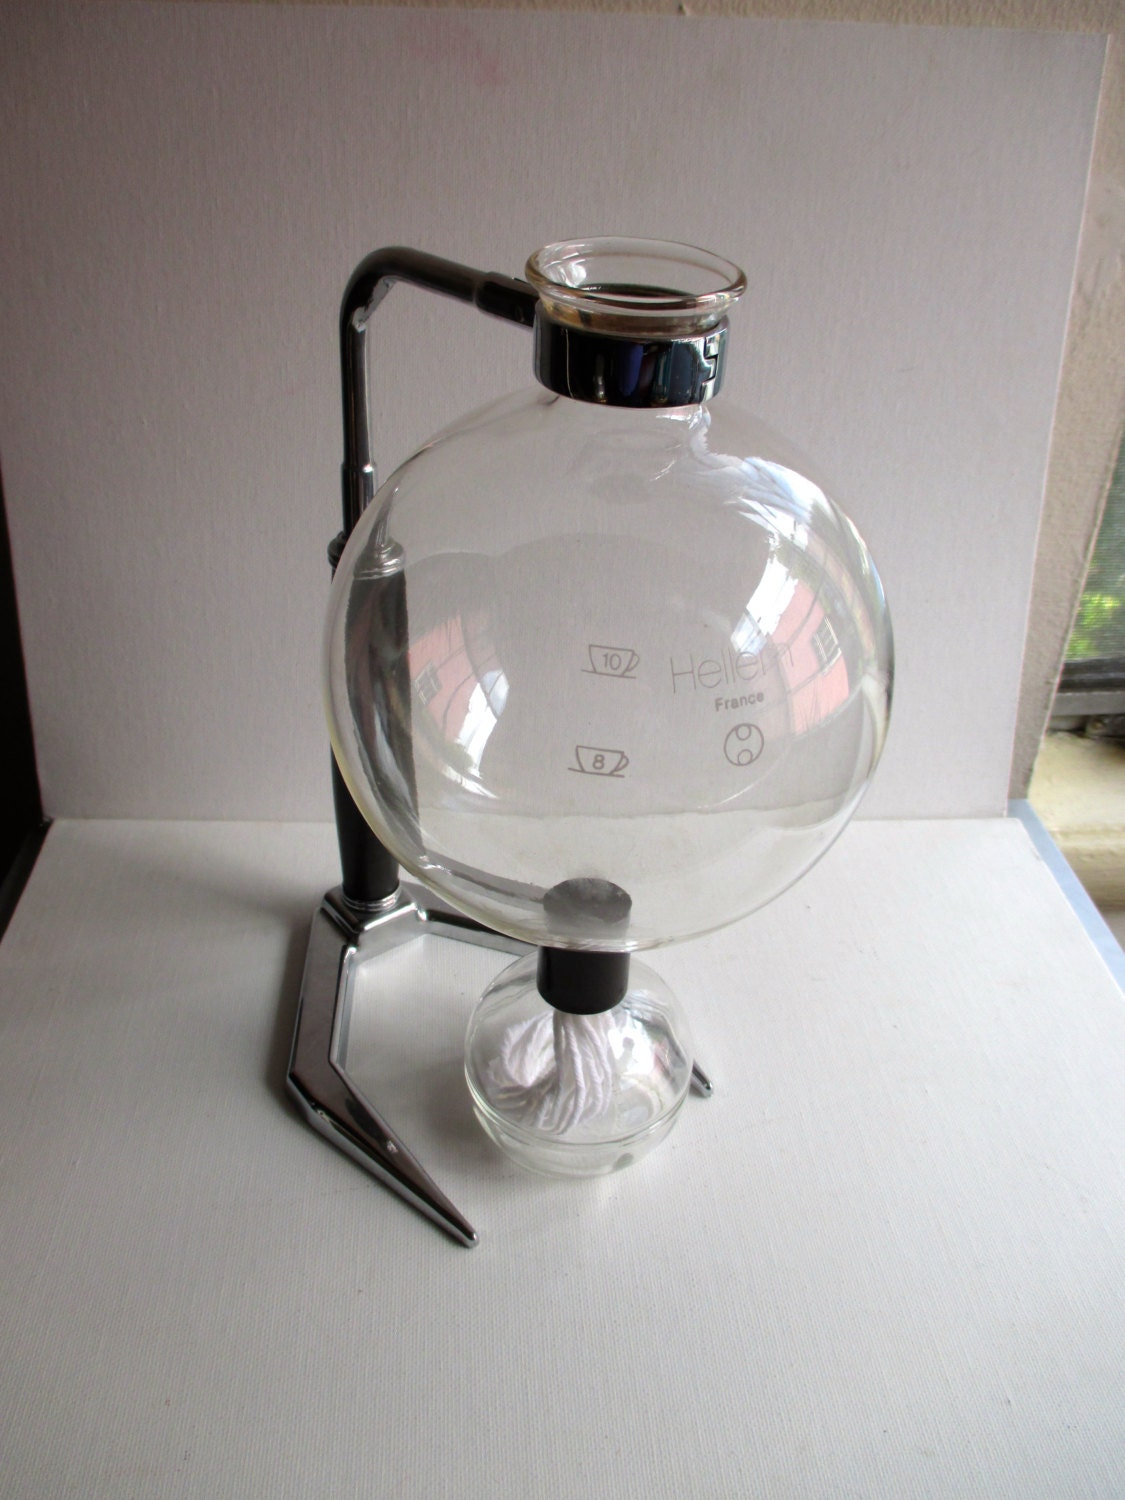 Coffee Maker Made In France : 1970s Hellem 10 Cup Suction Glass Coffee Maker France